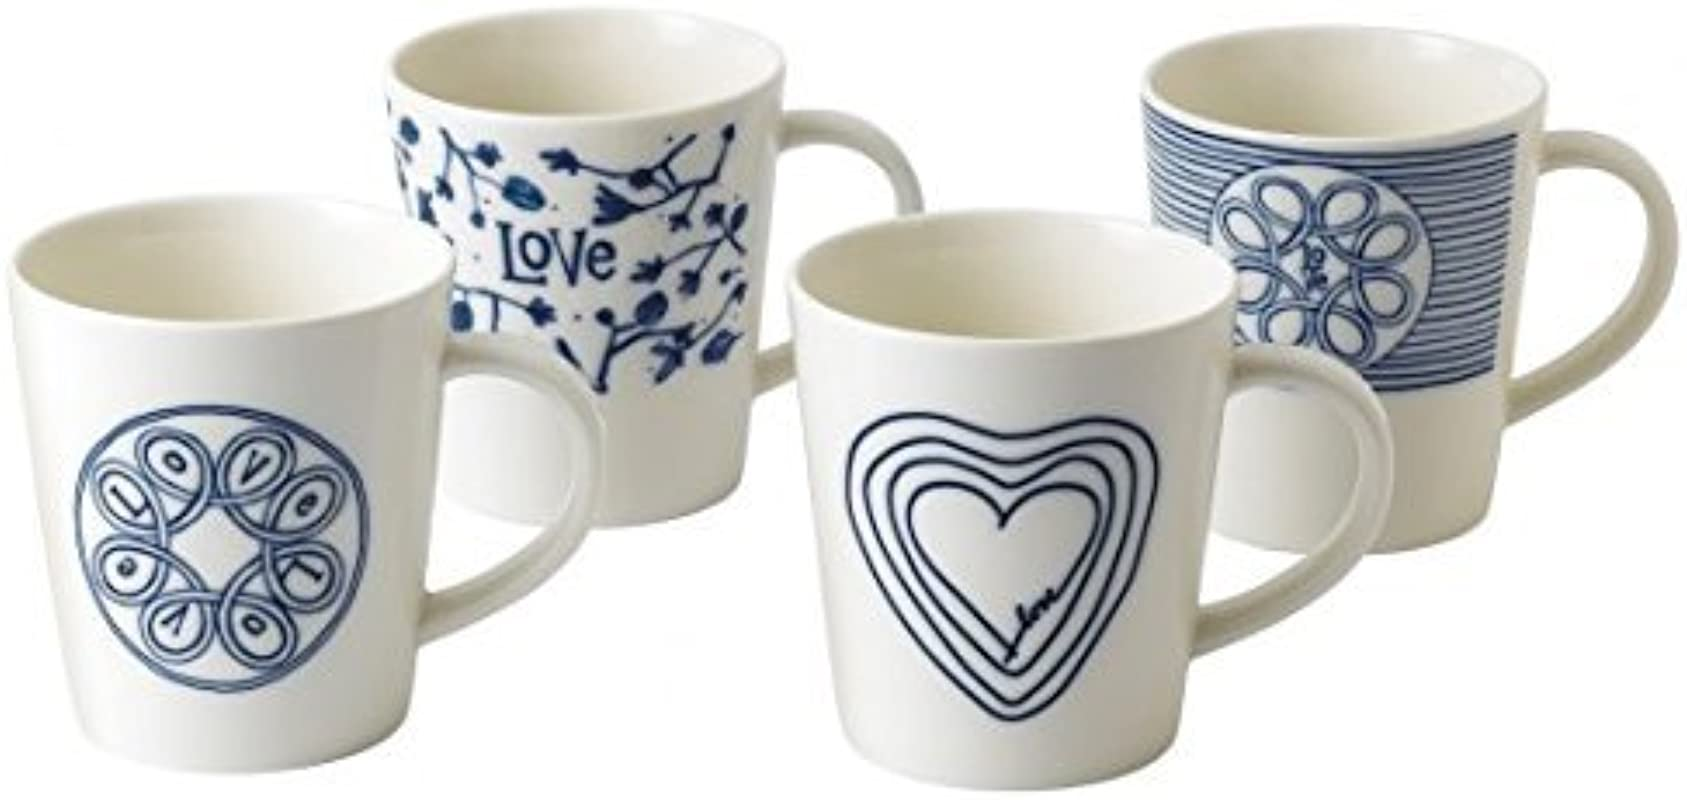 Blue Love Mugs Mixed Set Of 4 Ellen Degeneres Collection By Royal Doulton